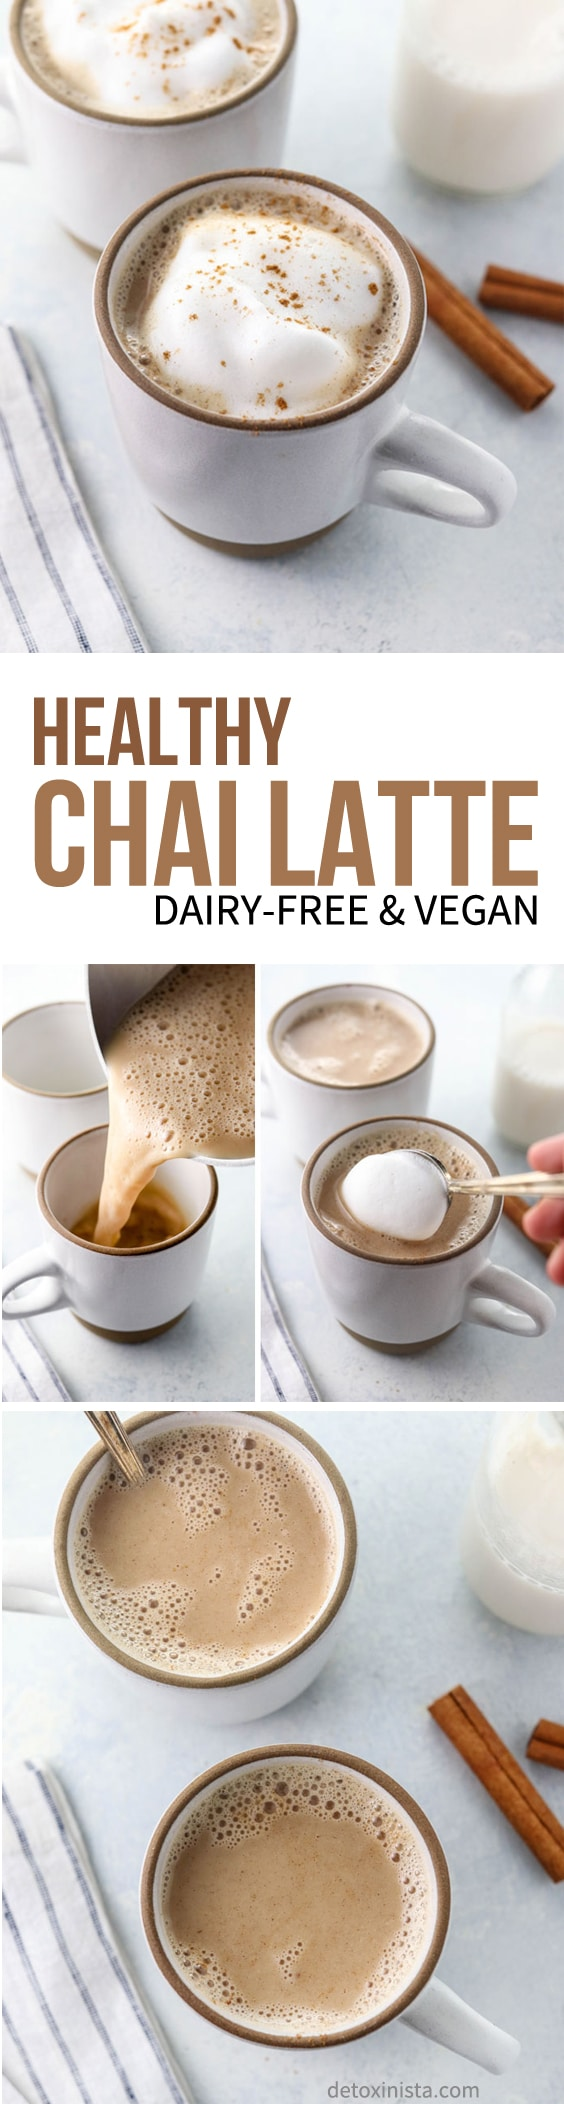 This HEALTHY CHAI LATTE recipe is dairy-free and naturally sweetened, made with pure maple syrup and almond milk. It takes less than 5 minutes to prepare on the stove and is caffeine-free! #dairyfree #healthyrecipe